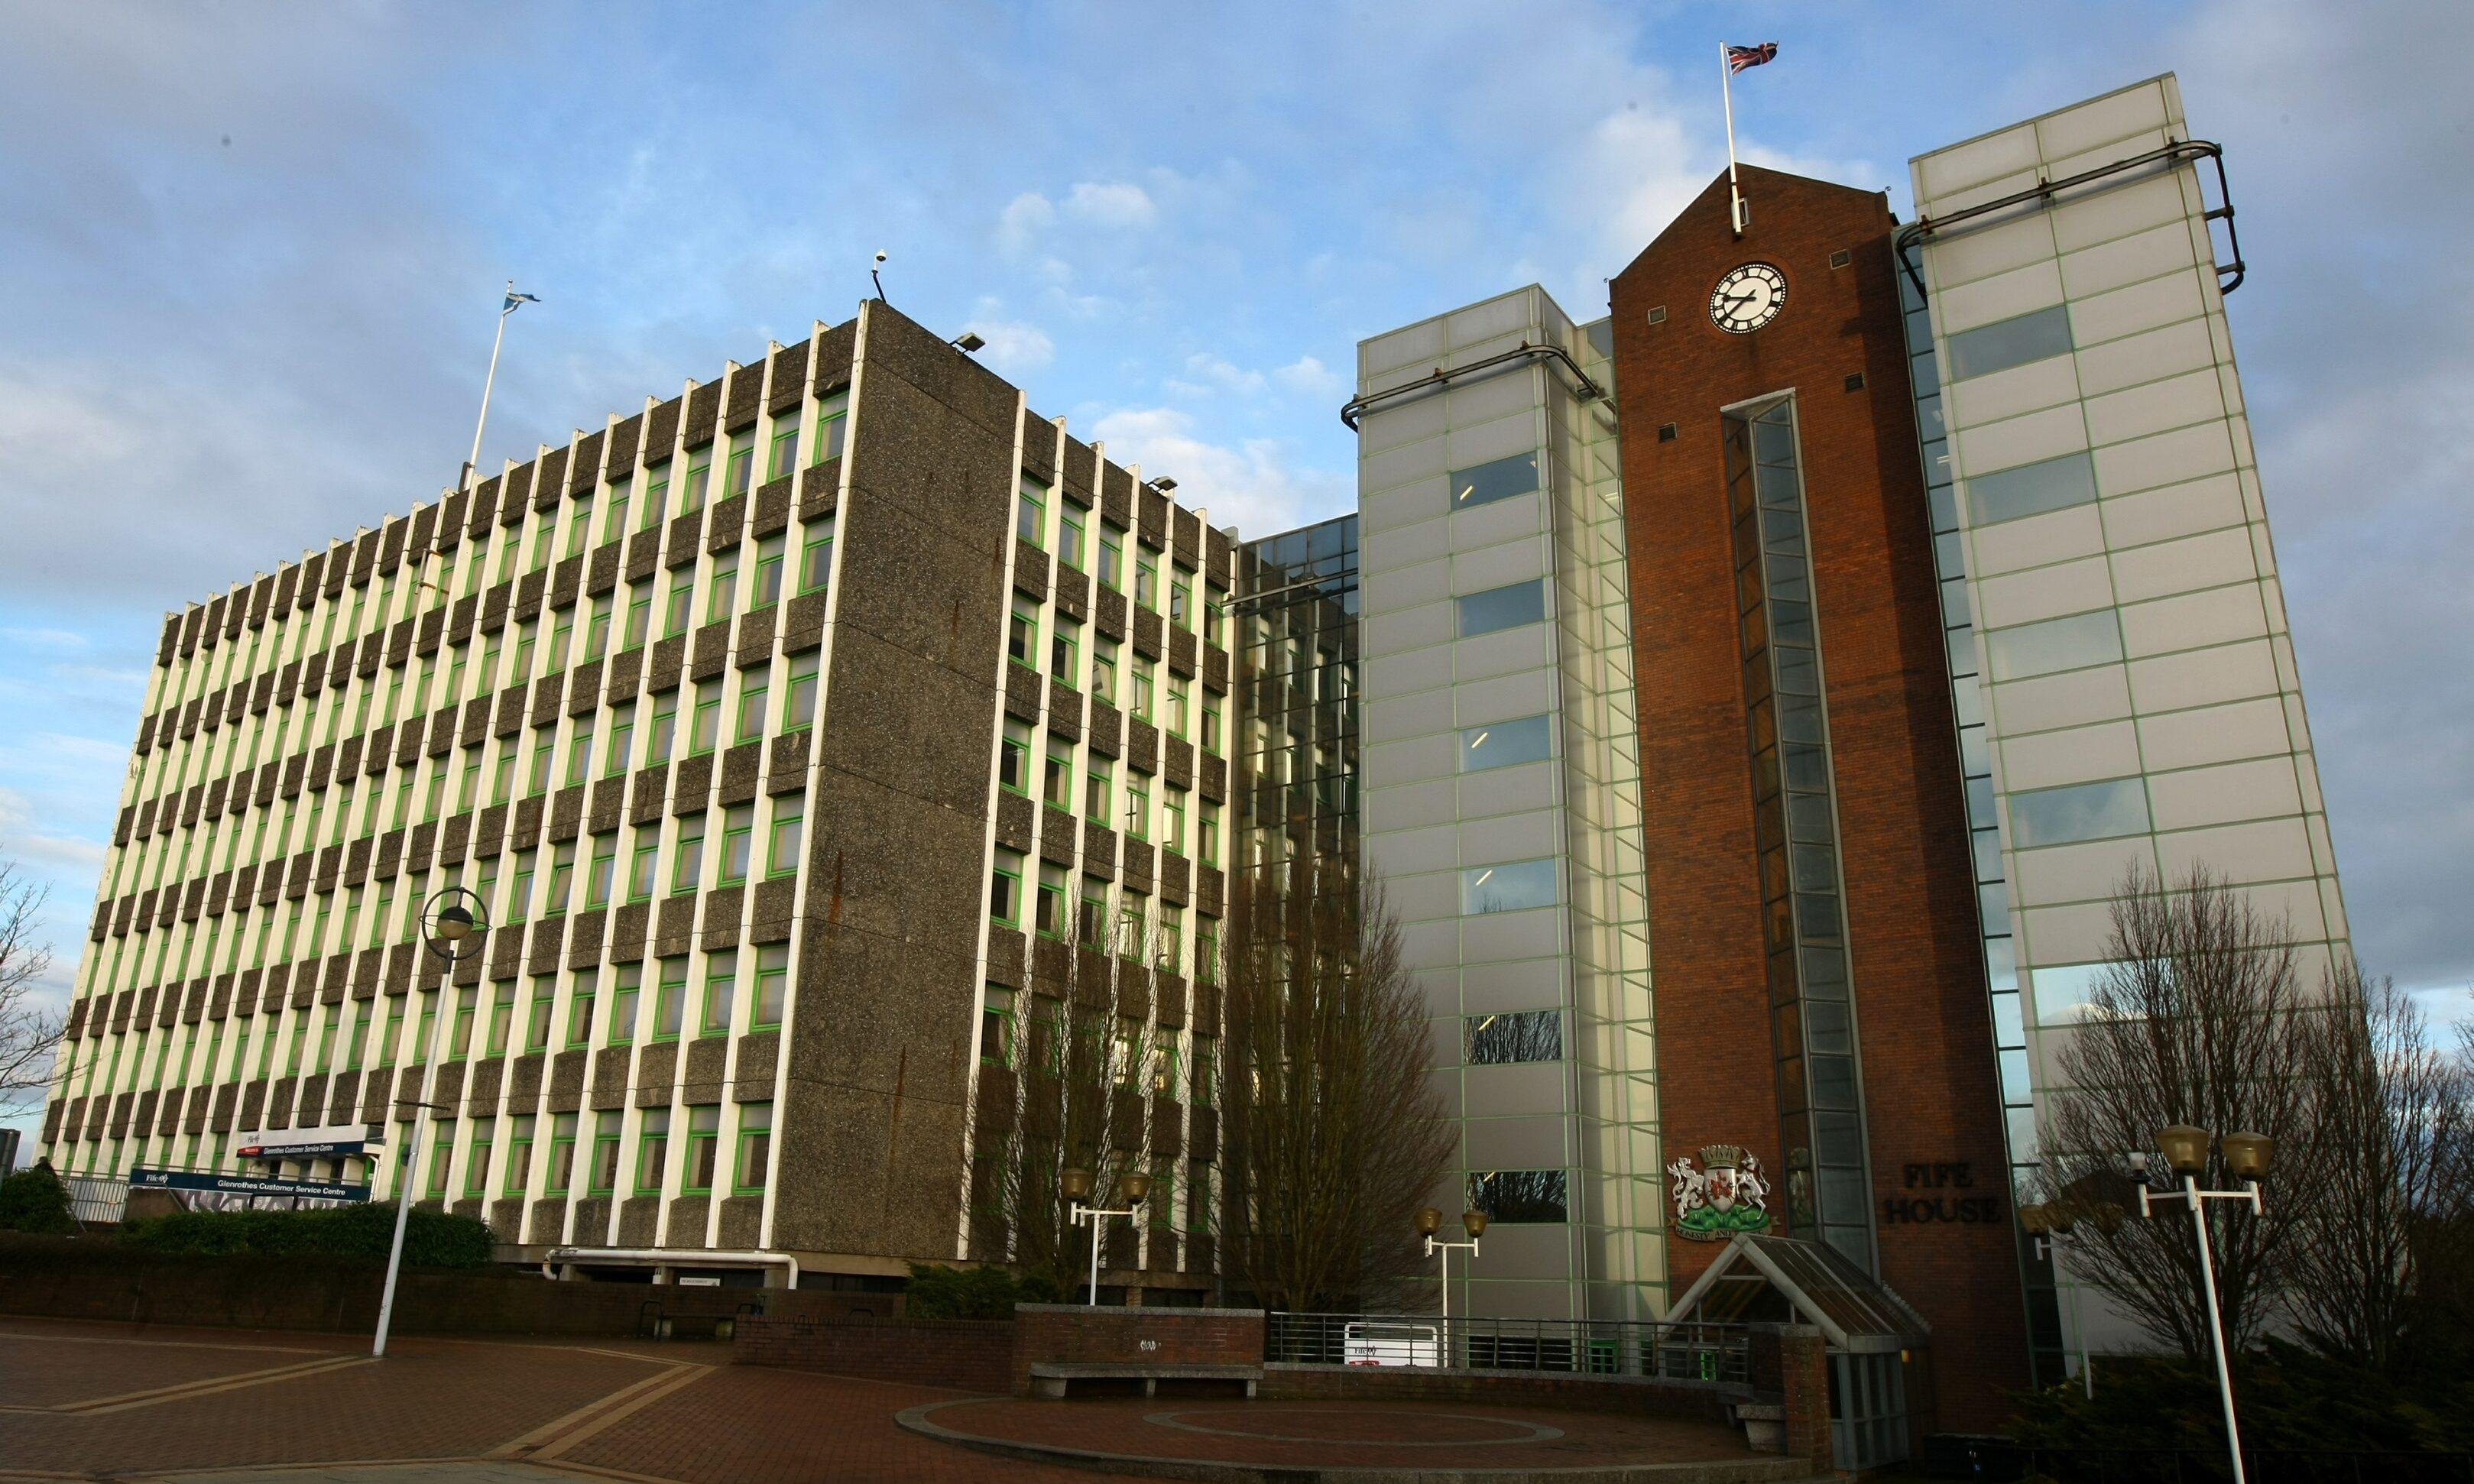 Fife House, the headquarters of Fife Council.